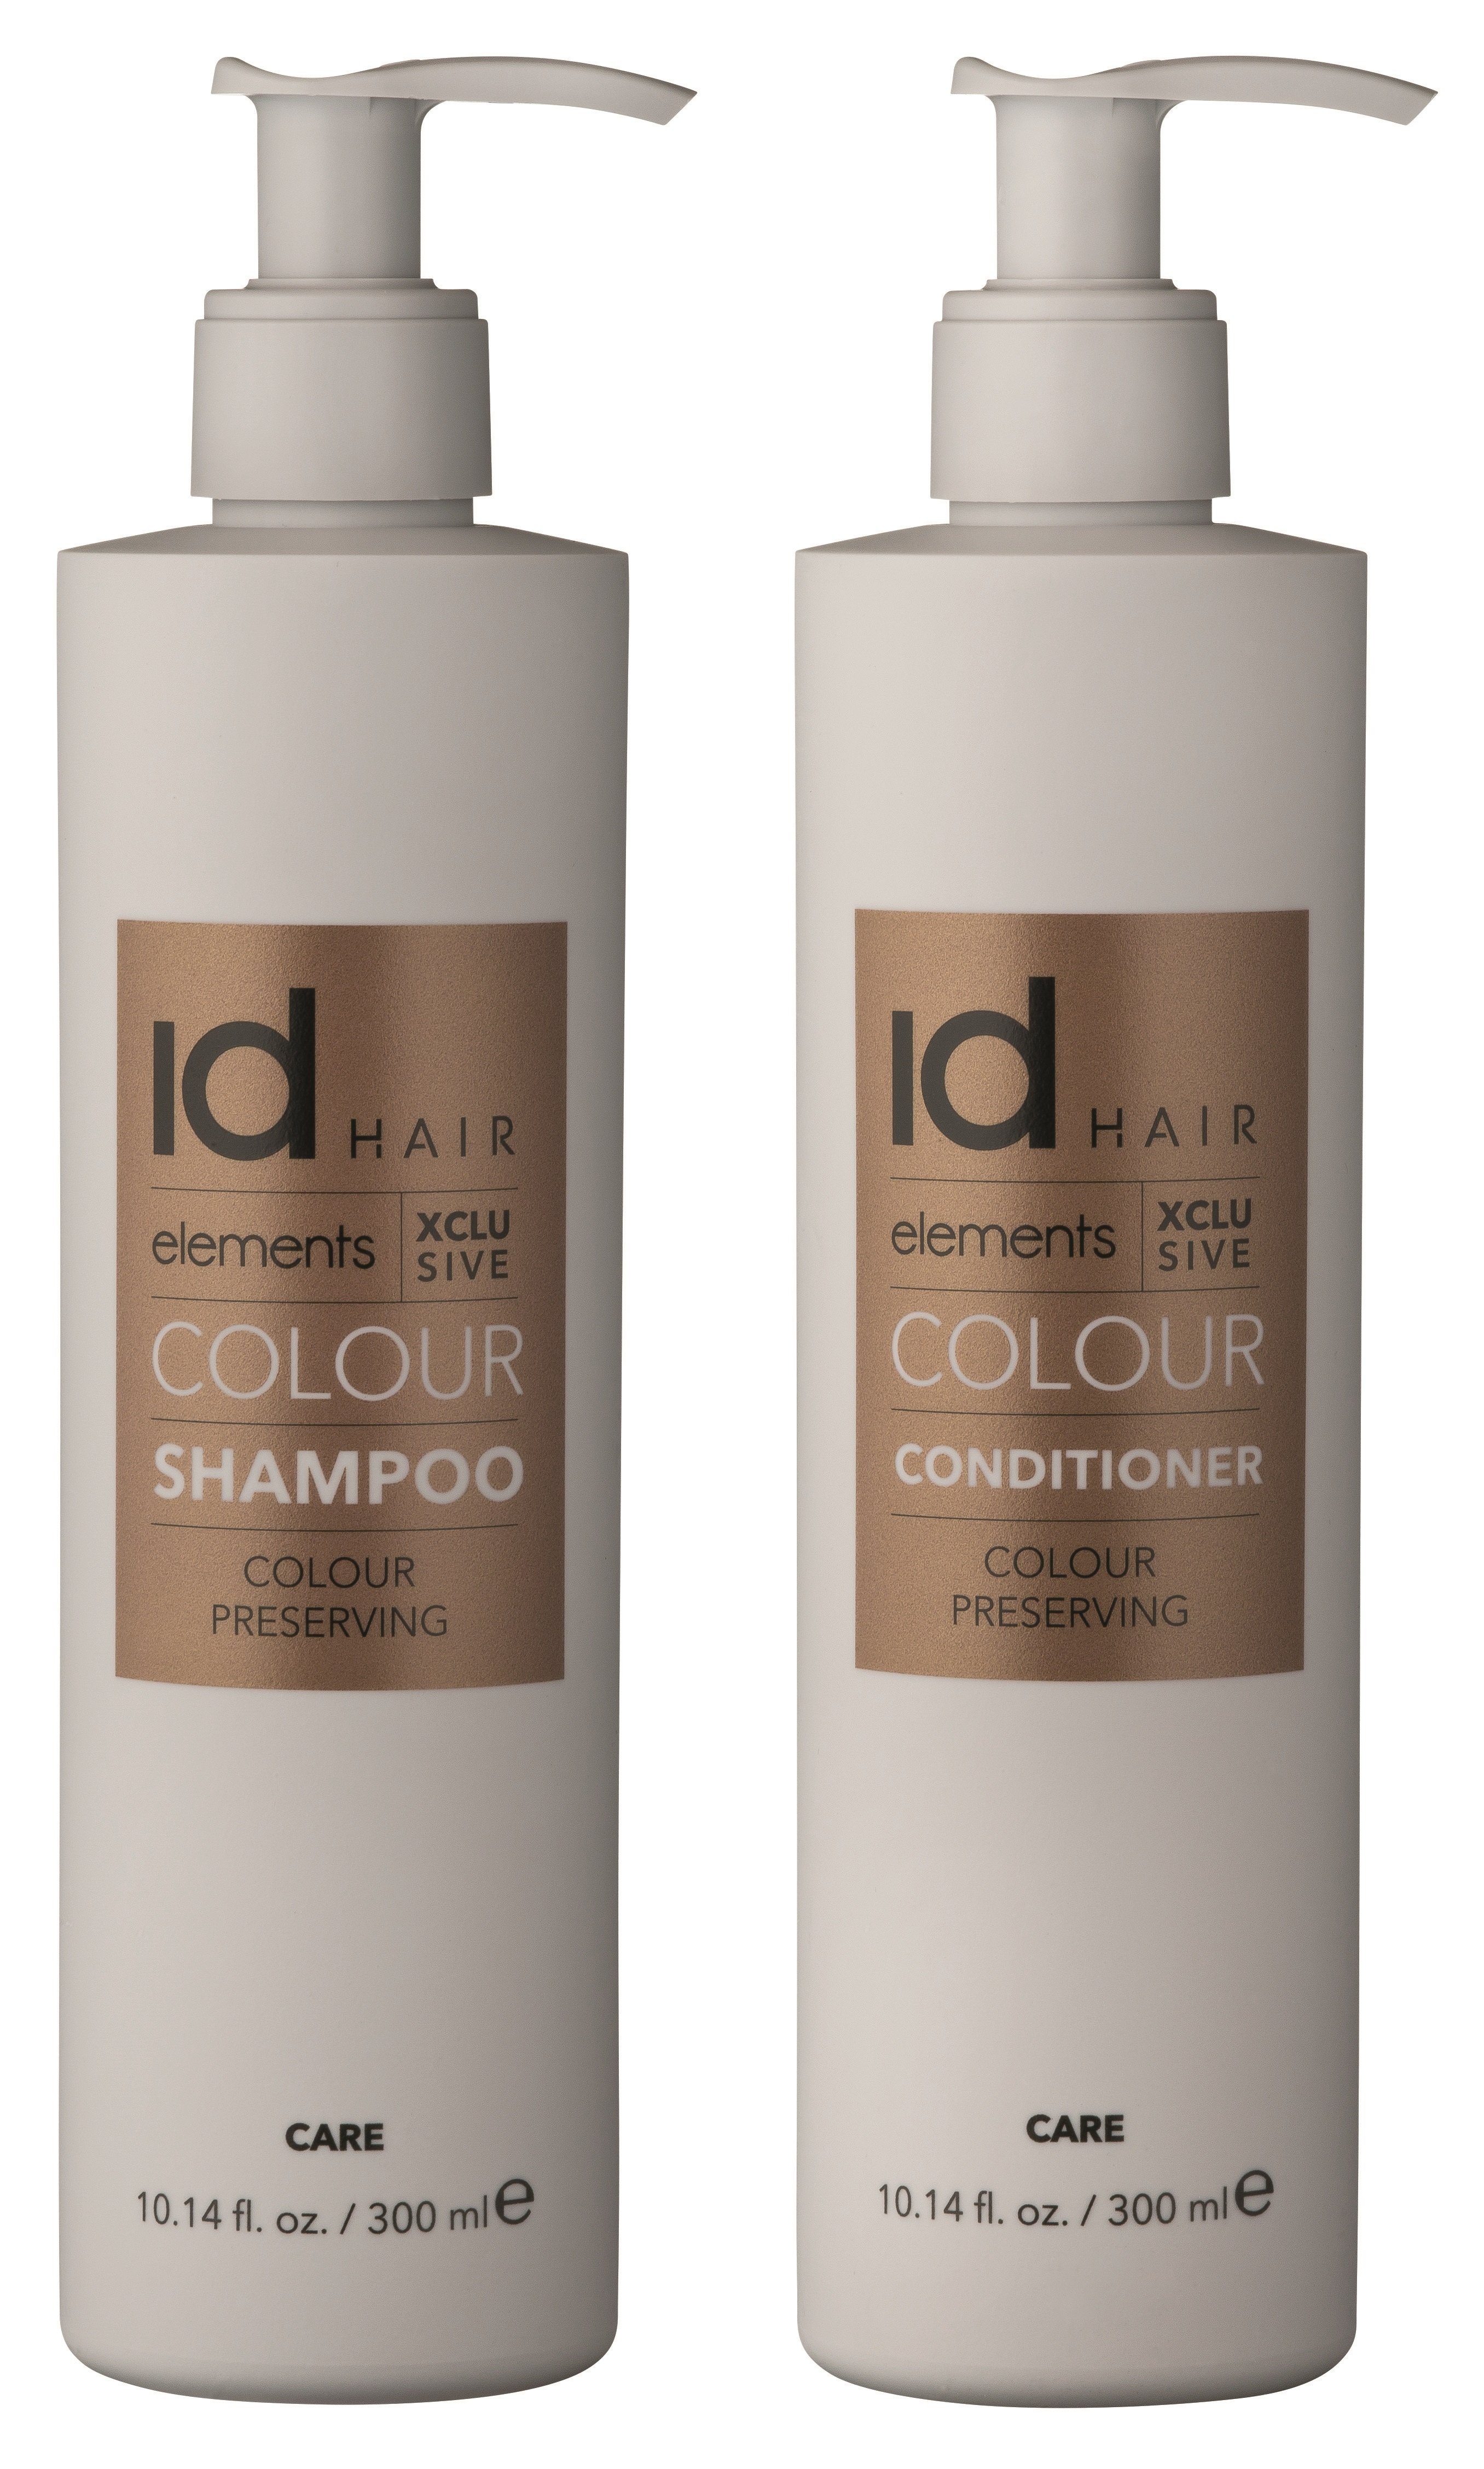 IdHAIR - Elements Xclusive Colour Shampoo 300 ml + Conditioner 300 ml